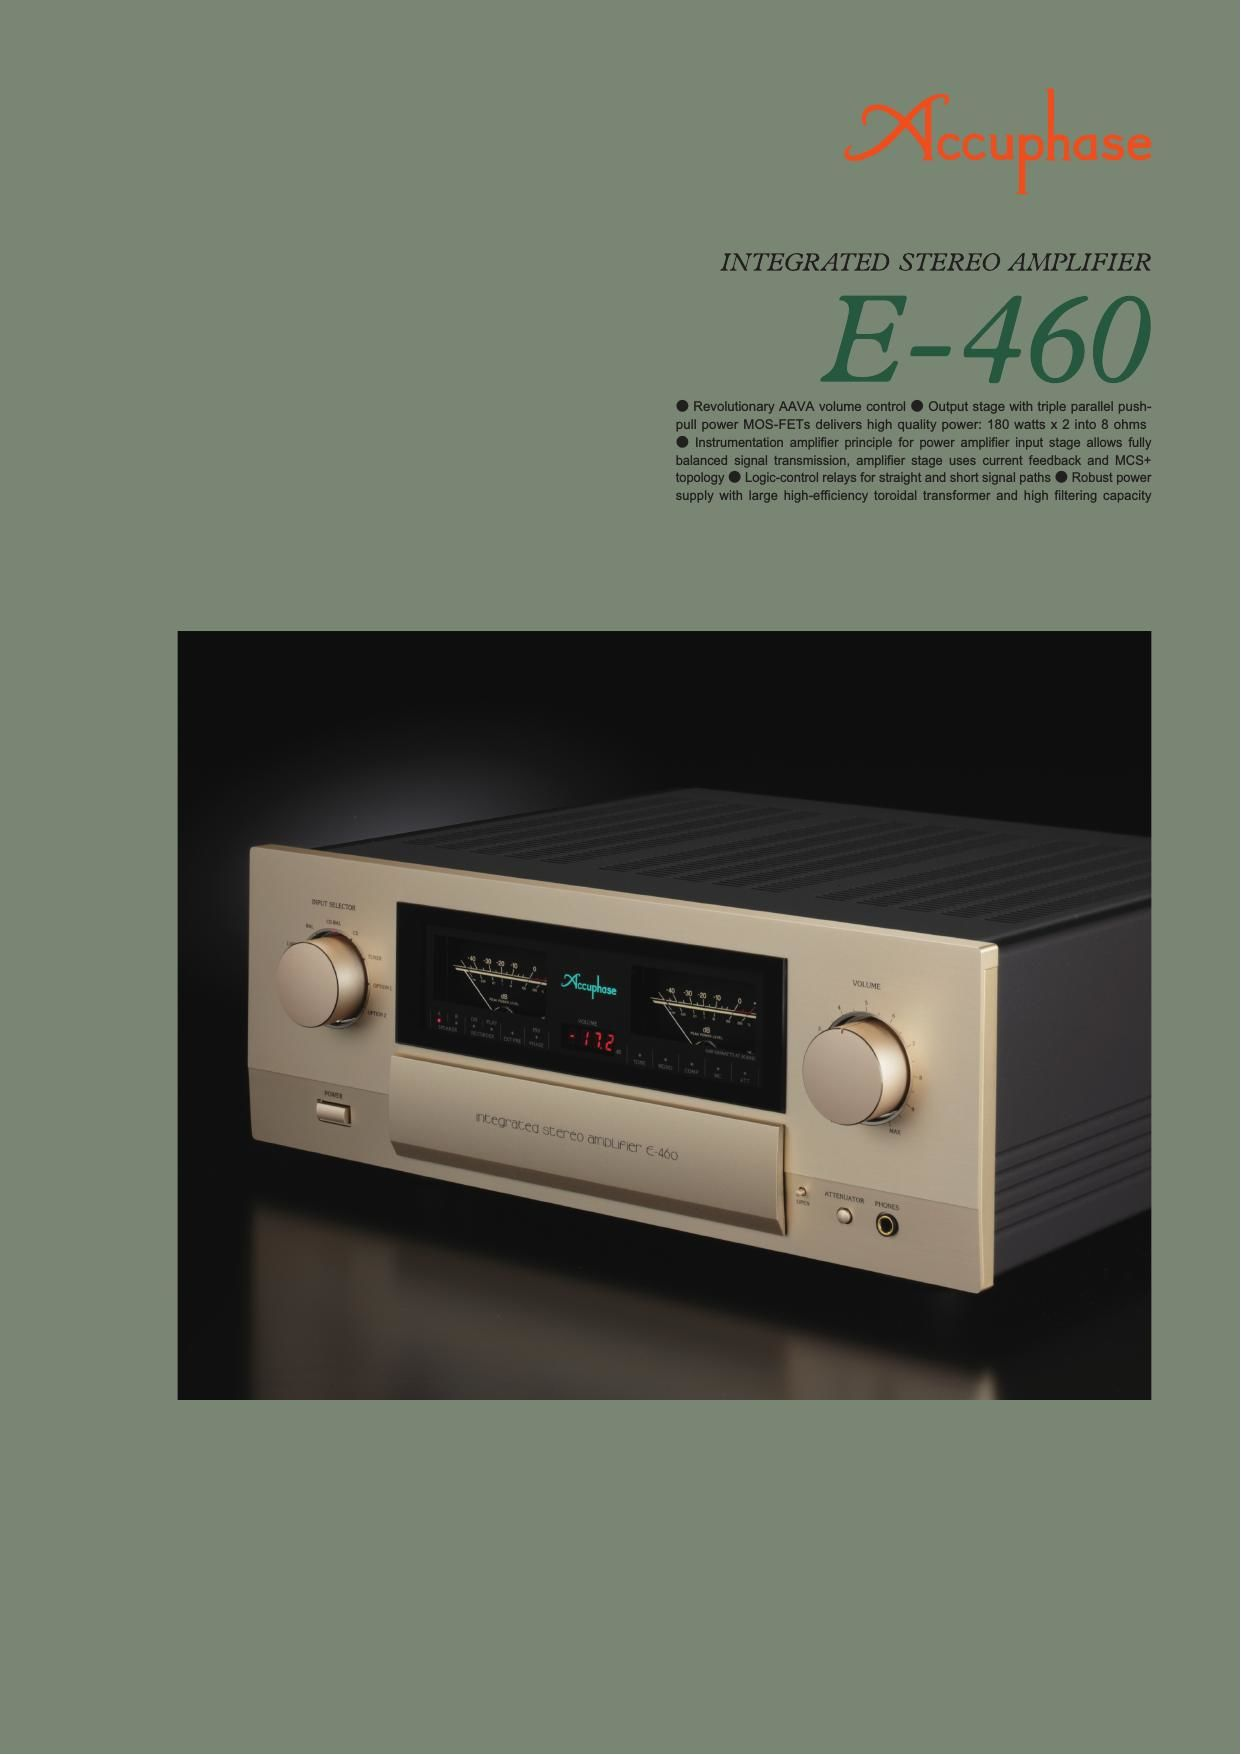 Accuphase E 460 Brochure